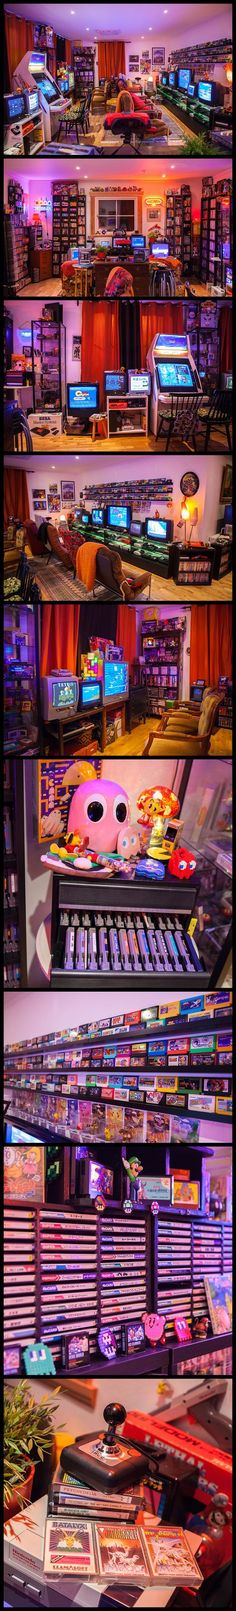 Amazing Retro Game Room Setup via Heidi (stopXwhispering). Tons of systems, gaming units, and gaming decor packed into one room.